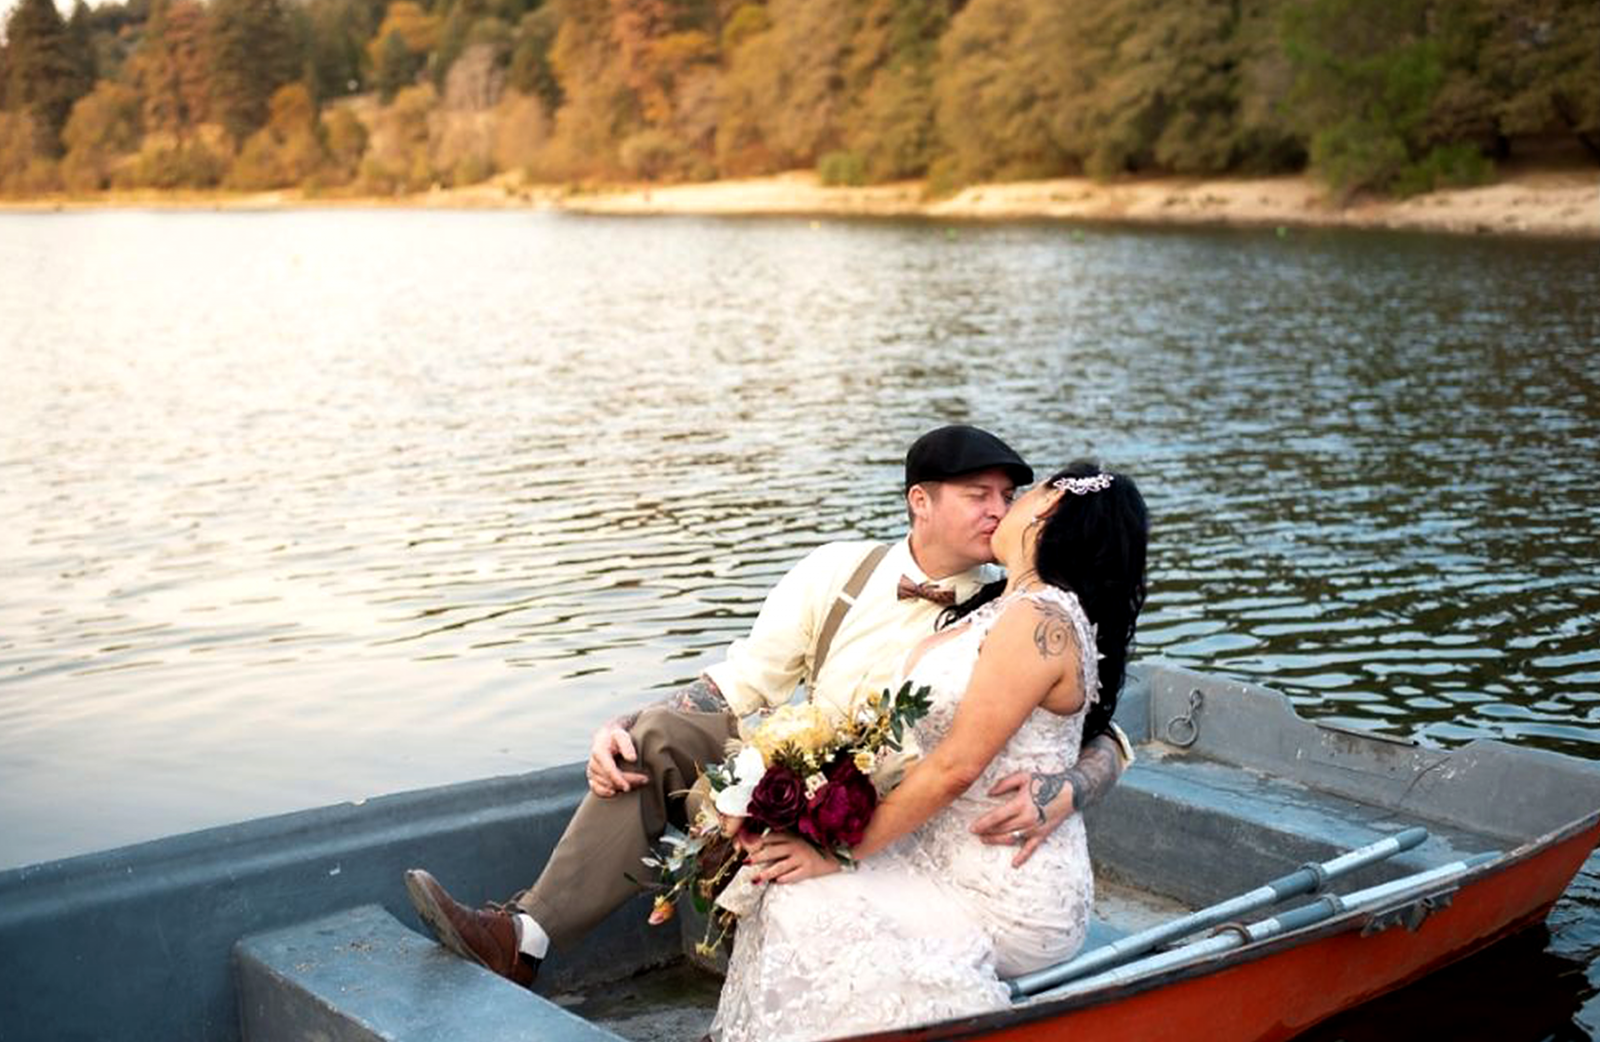 married couple kissing on a boat on a lake